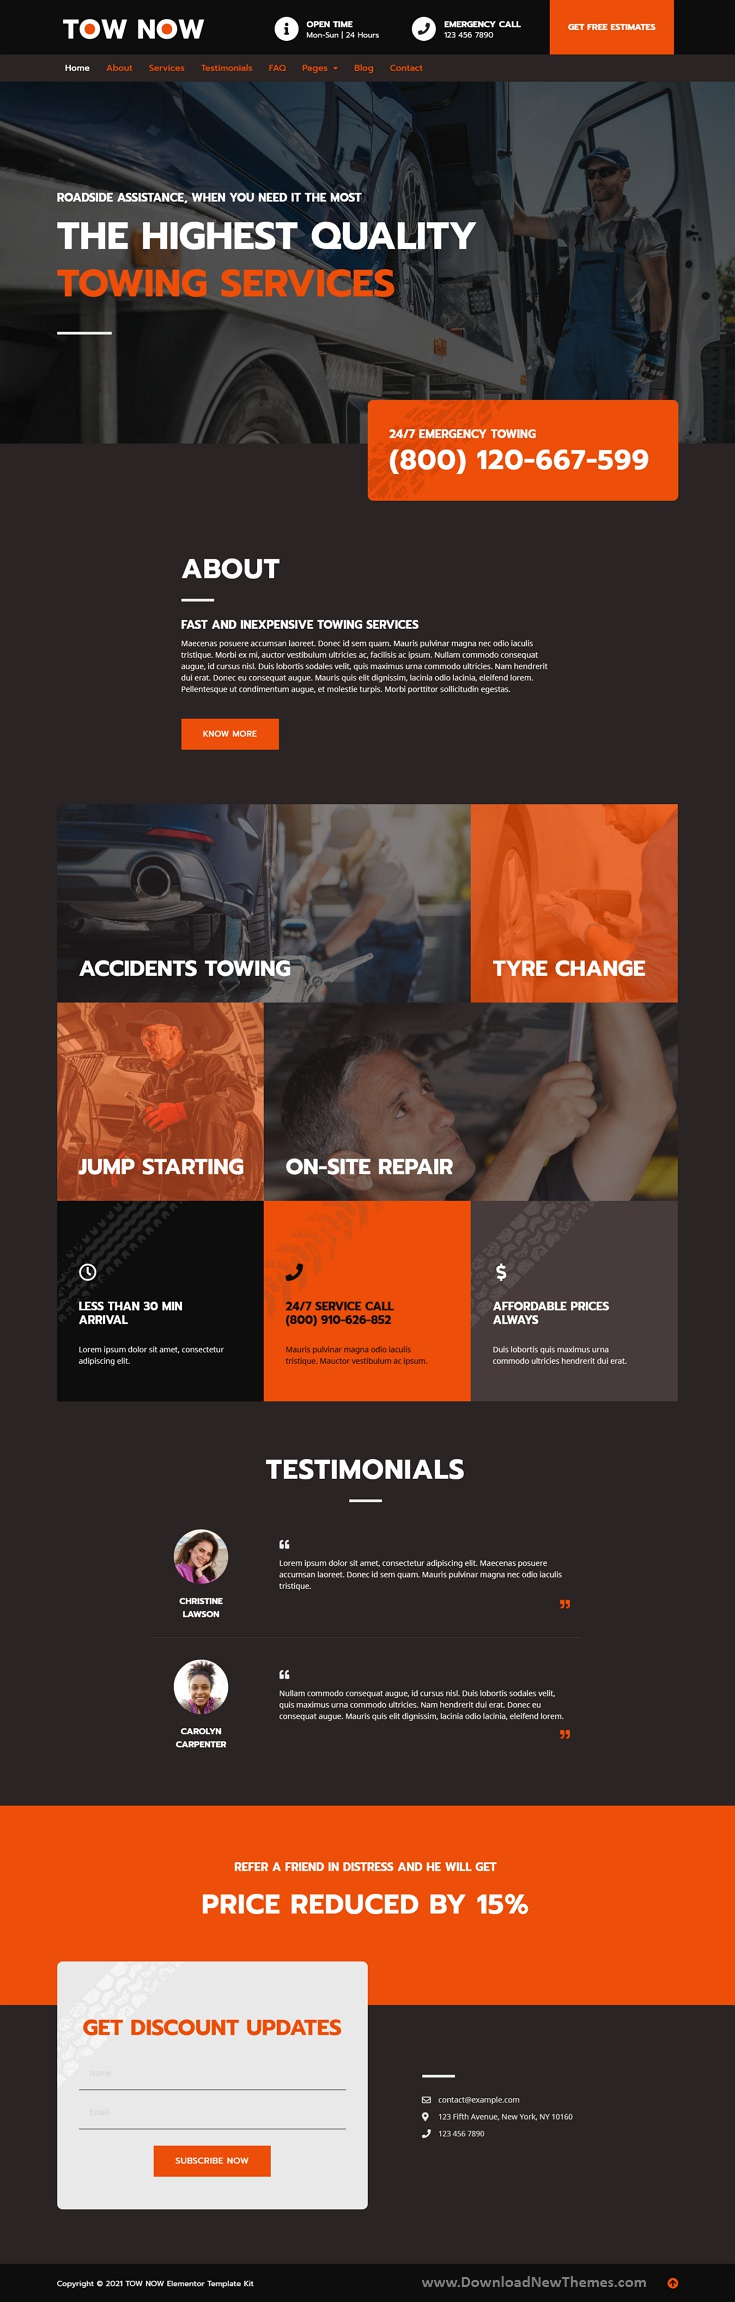 Tow Now - Towing Services Elementor Template Kit Review